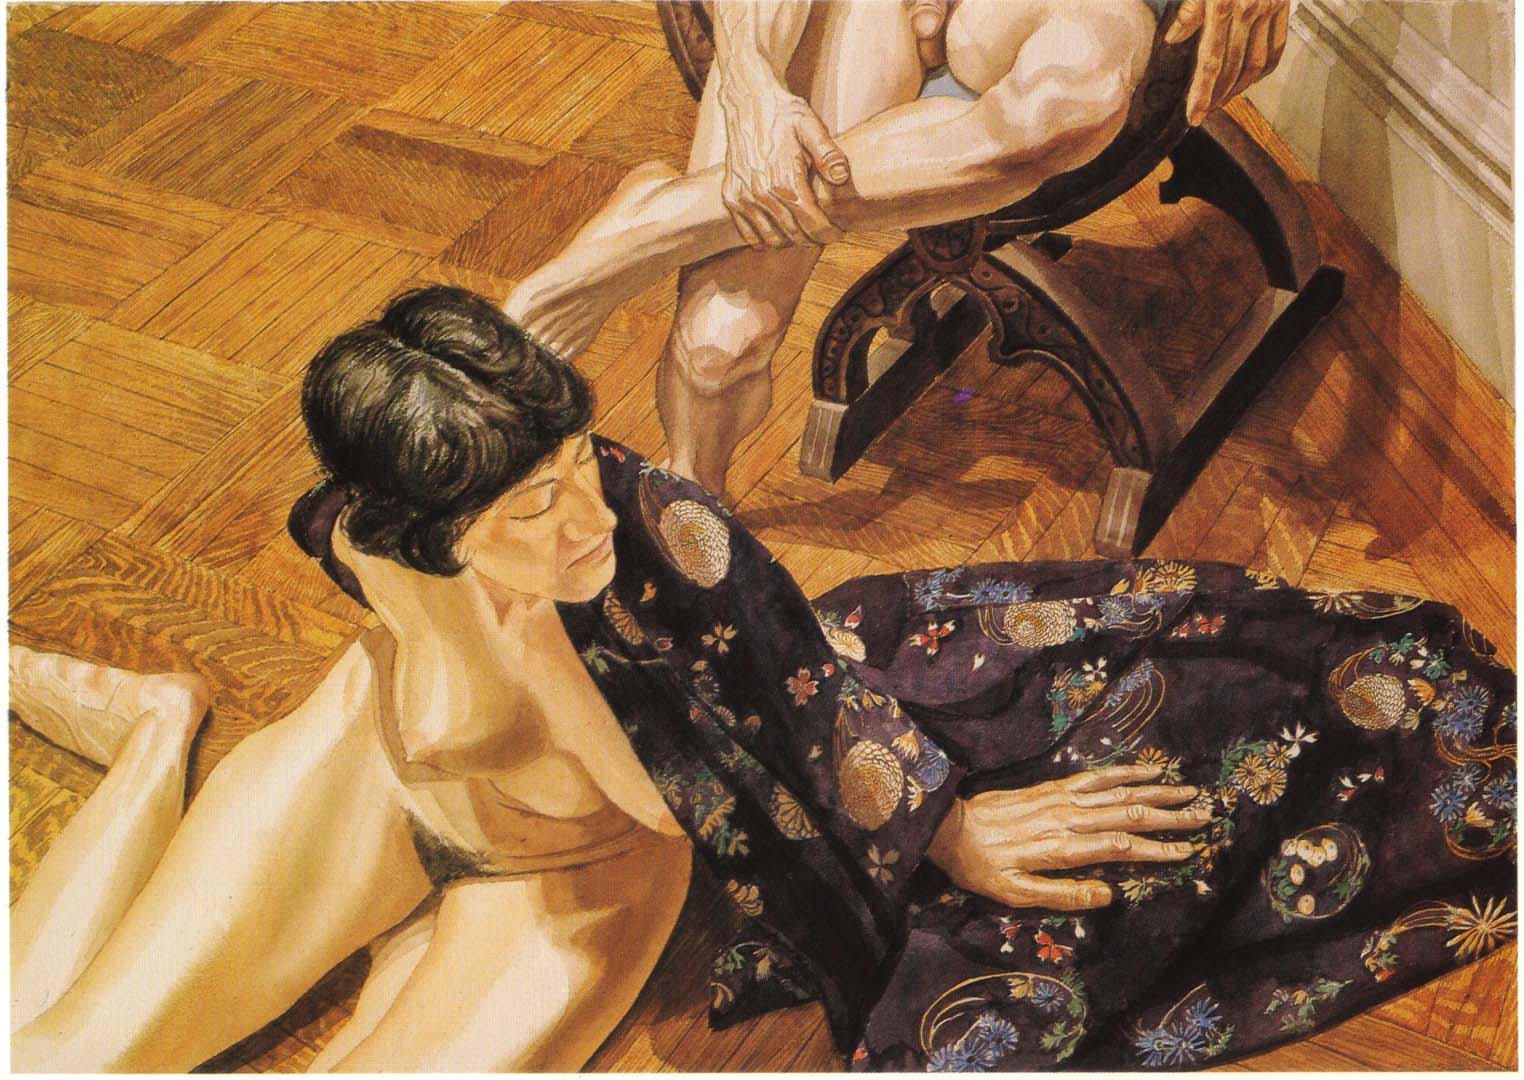 1978 Japanese Robed Model Seated on Floor